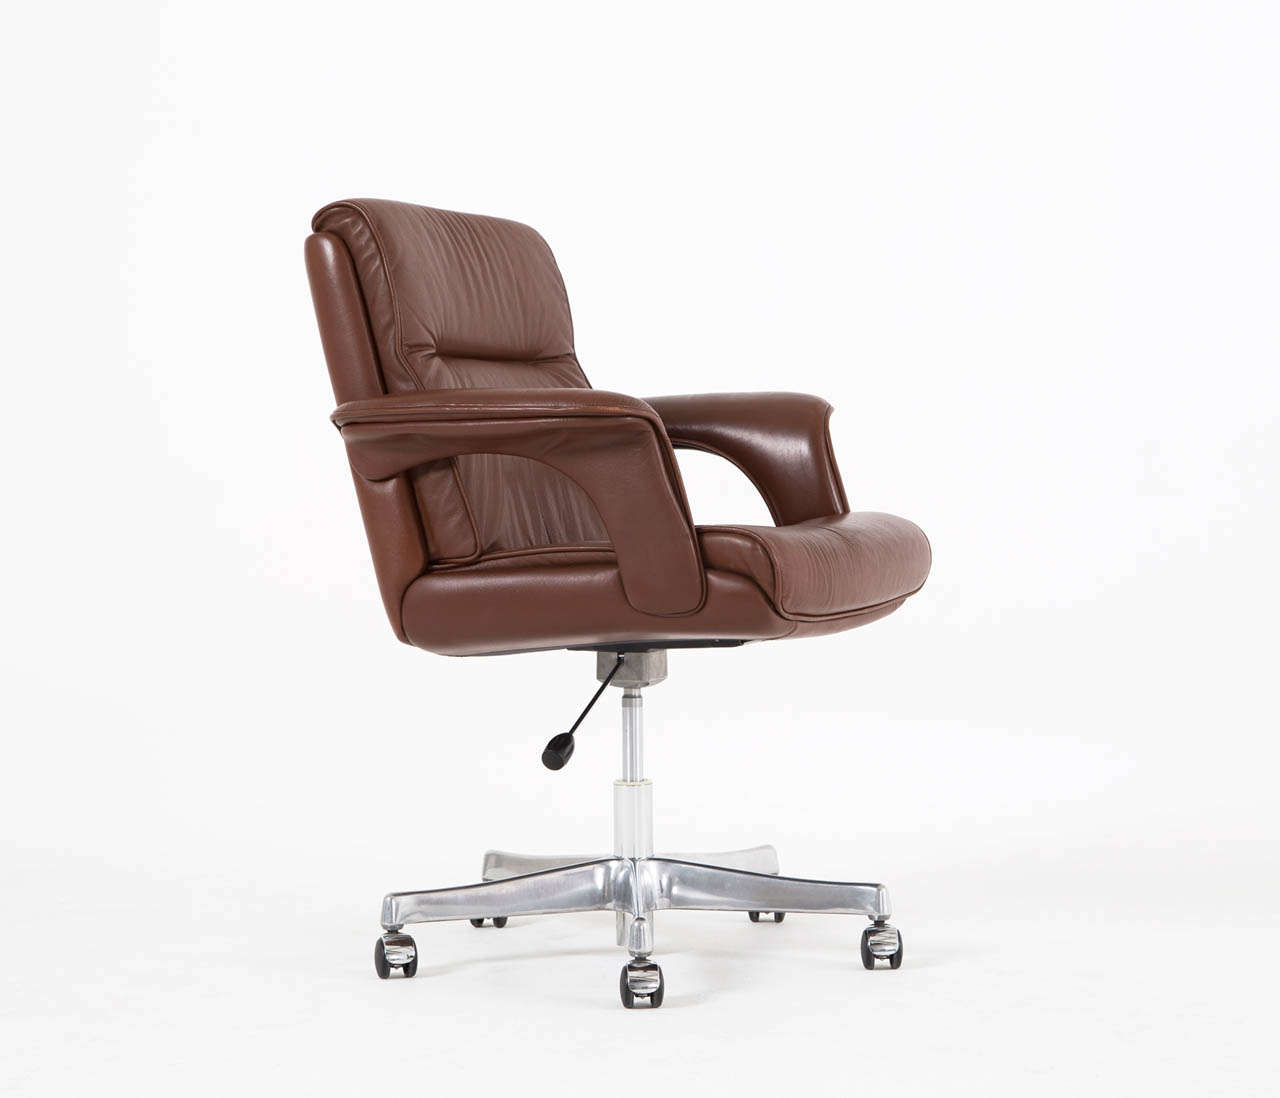 Executive Conference Desk Office Chair In Brown Leather For Sale At 1stdibs